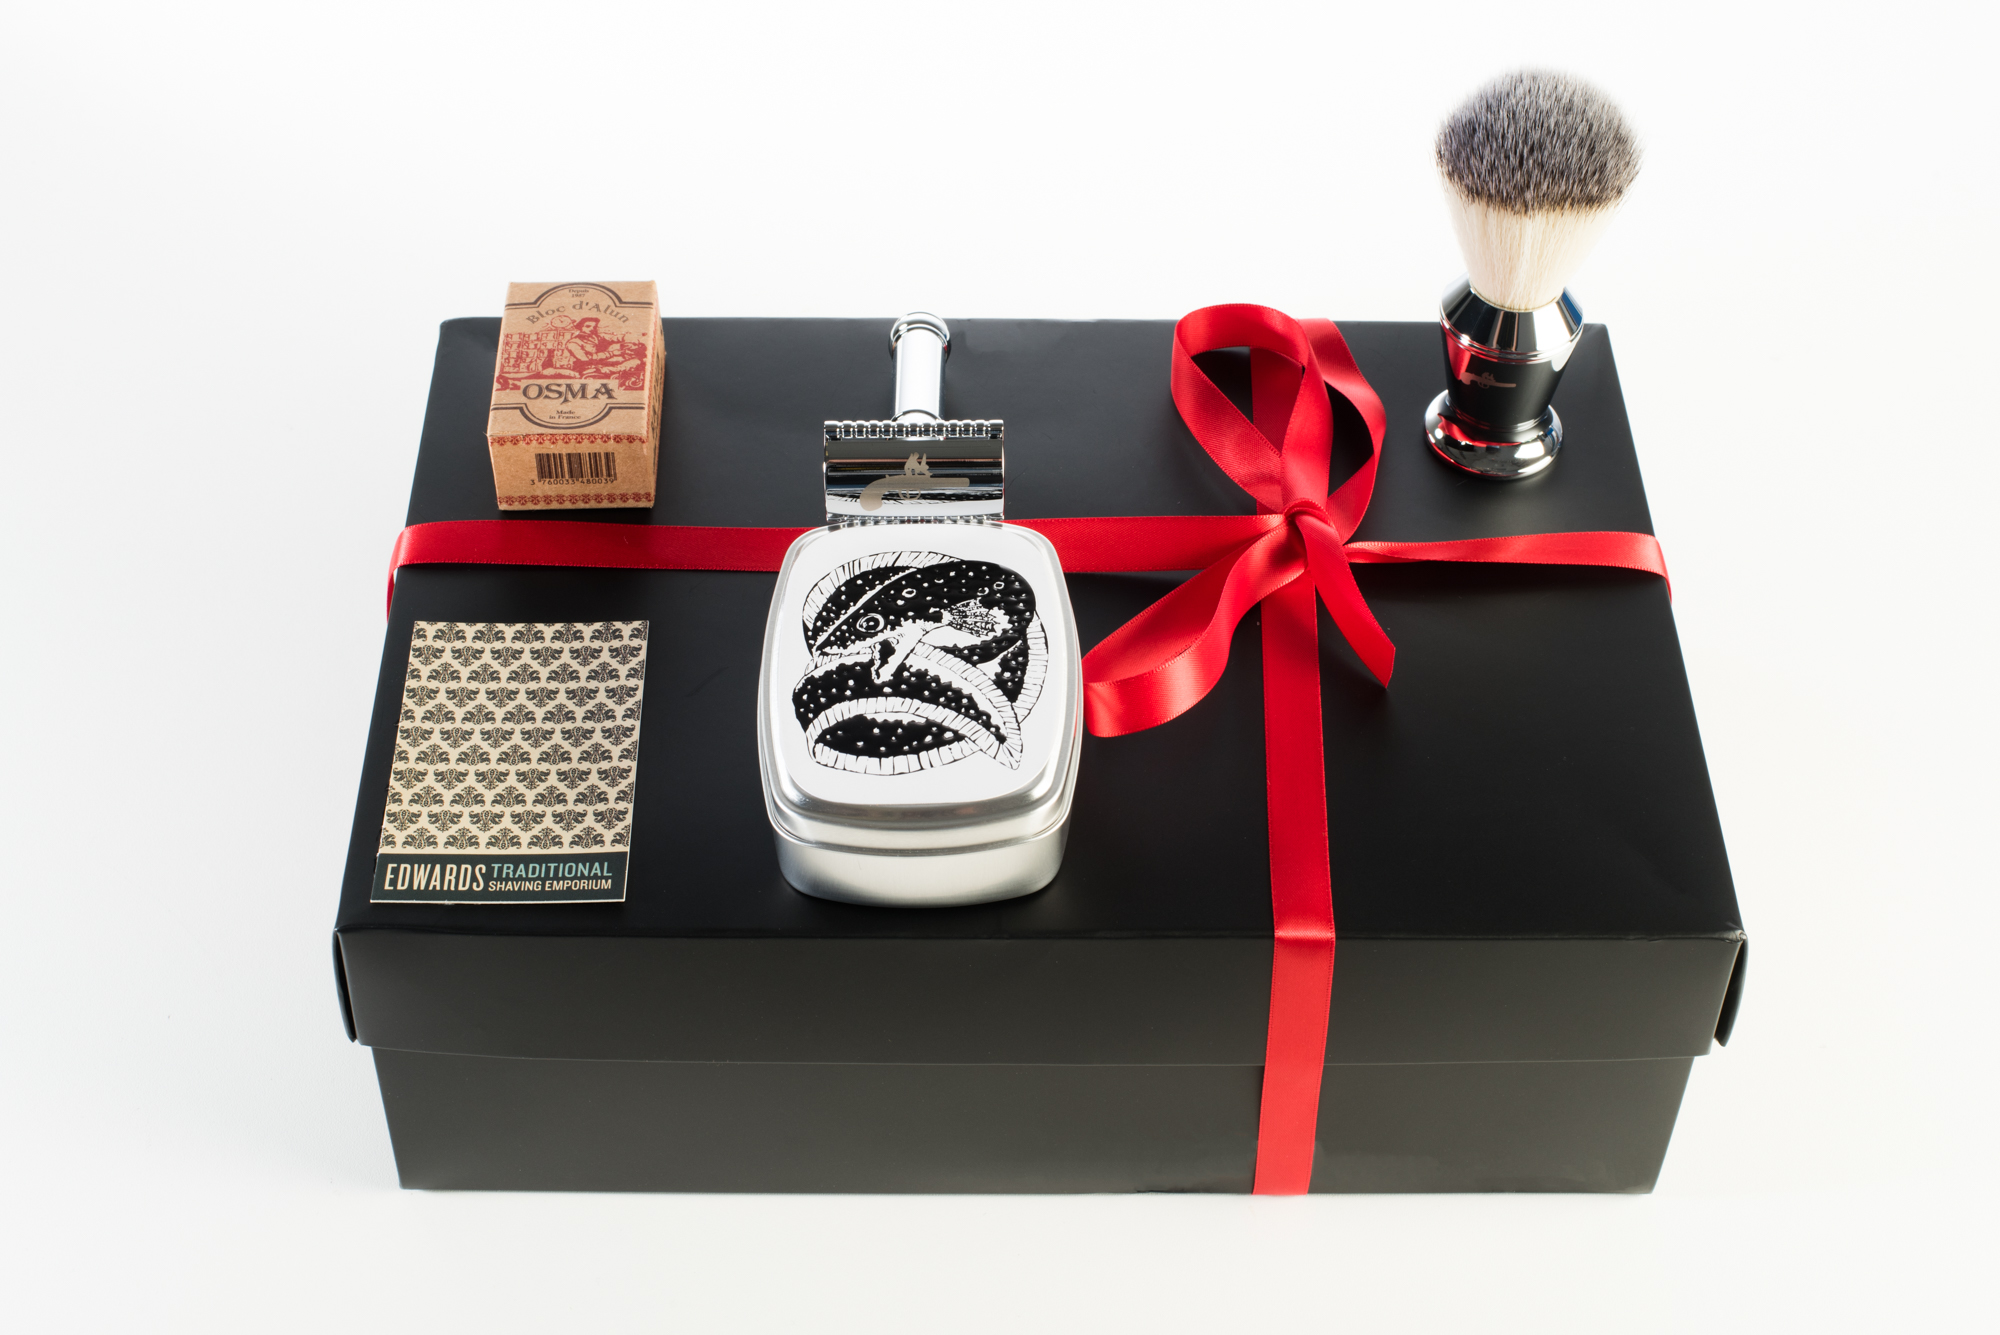 Christmas 5 piece traditional shaving bundle